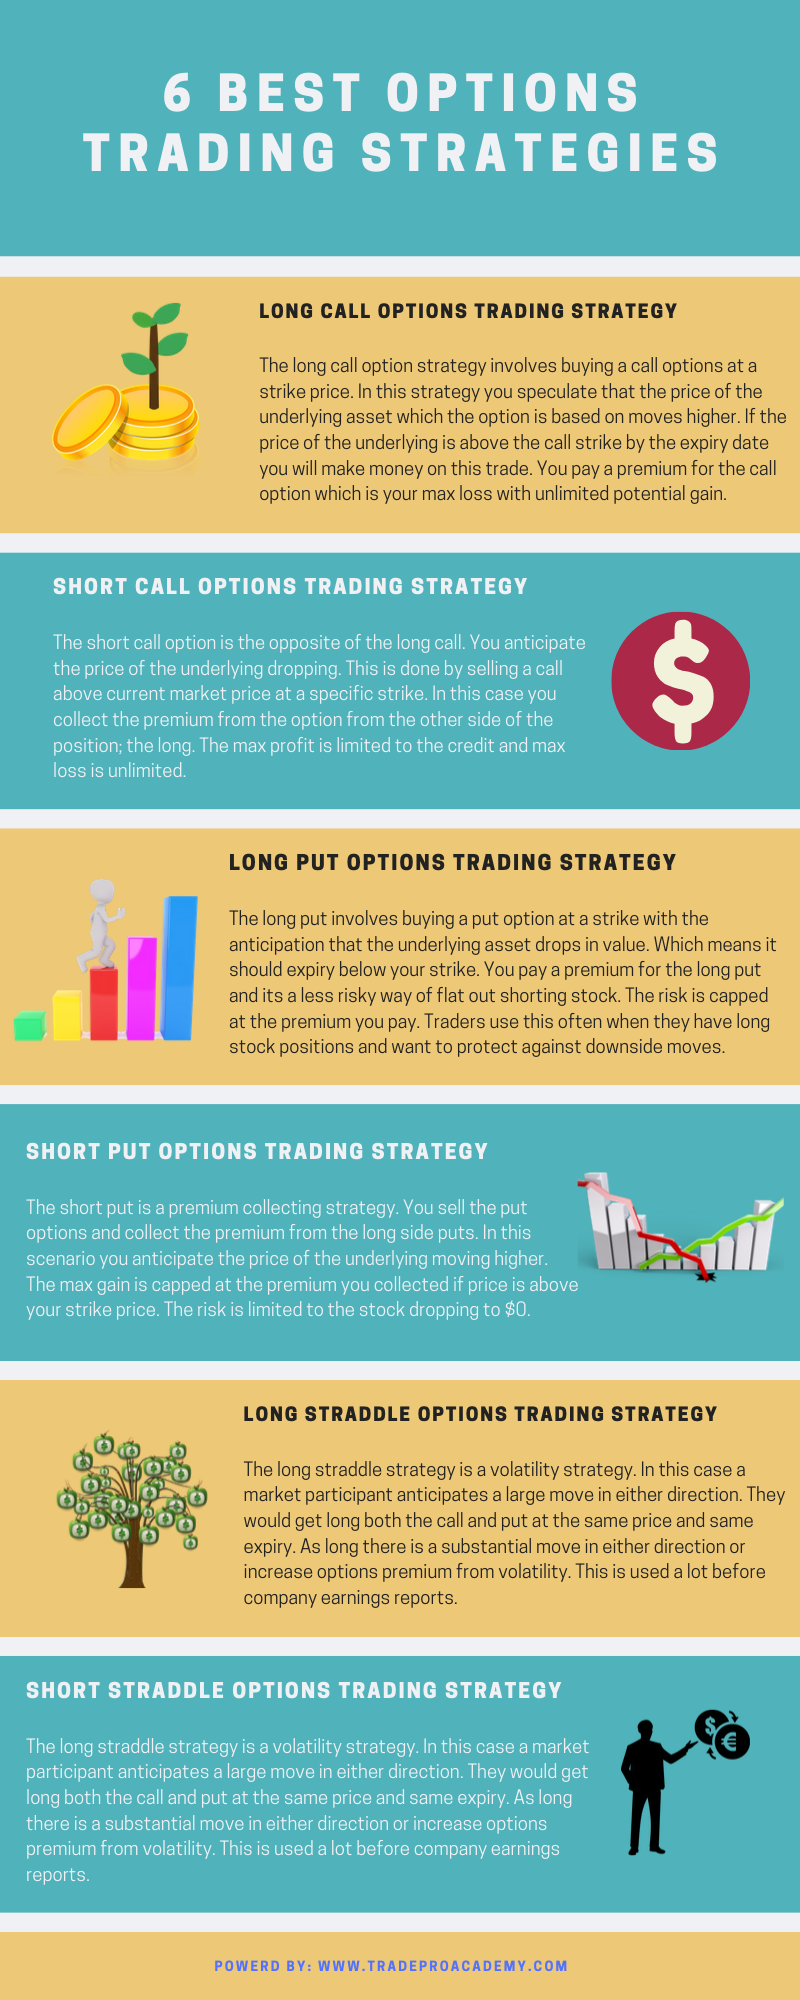 6 Best Option Trading Strategies